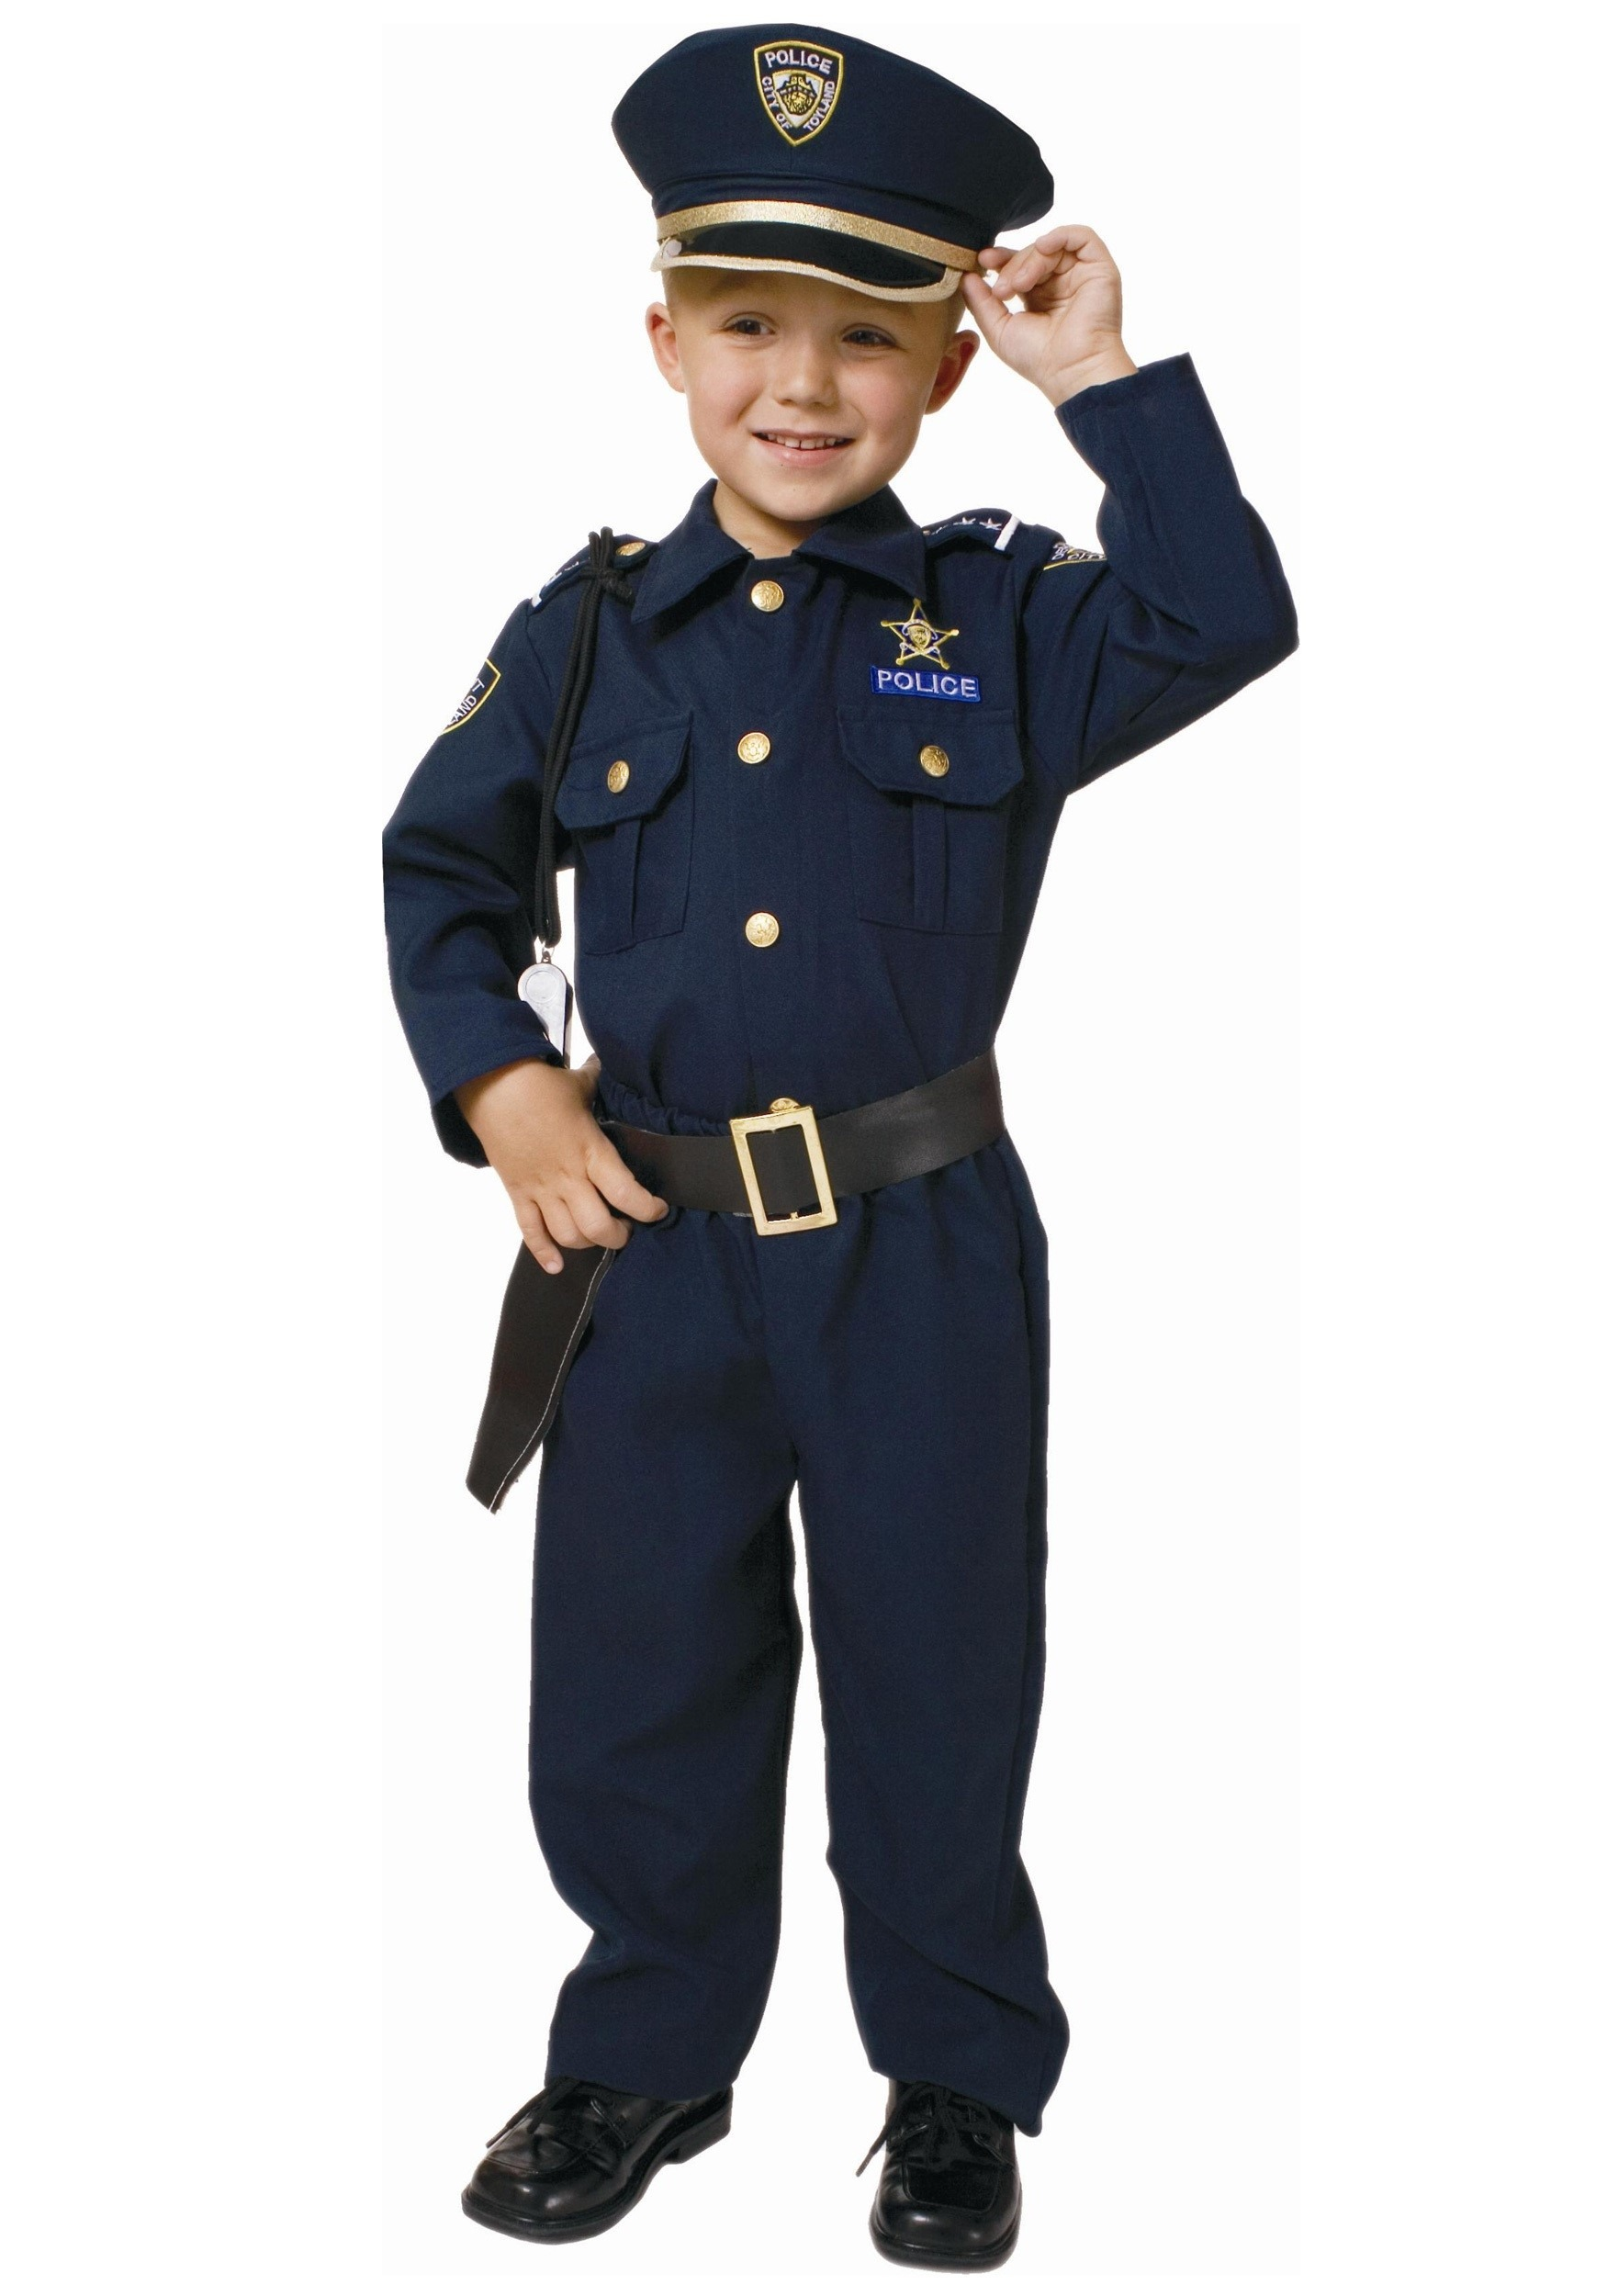 Boys' Police Costumes. Showing 40 of results that match your query. Search Product Result. Marvel Black Panther Movie Boys Deluxe Black Panther Battle Suit Costume. Reduced Price. Product Image. Price Inc. Plucky Police Officer Children's Halloween Dress Up Roleplay Costume. Product Image. Price $ 99 - $ .